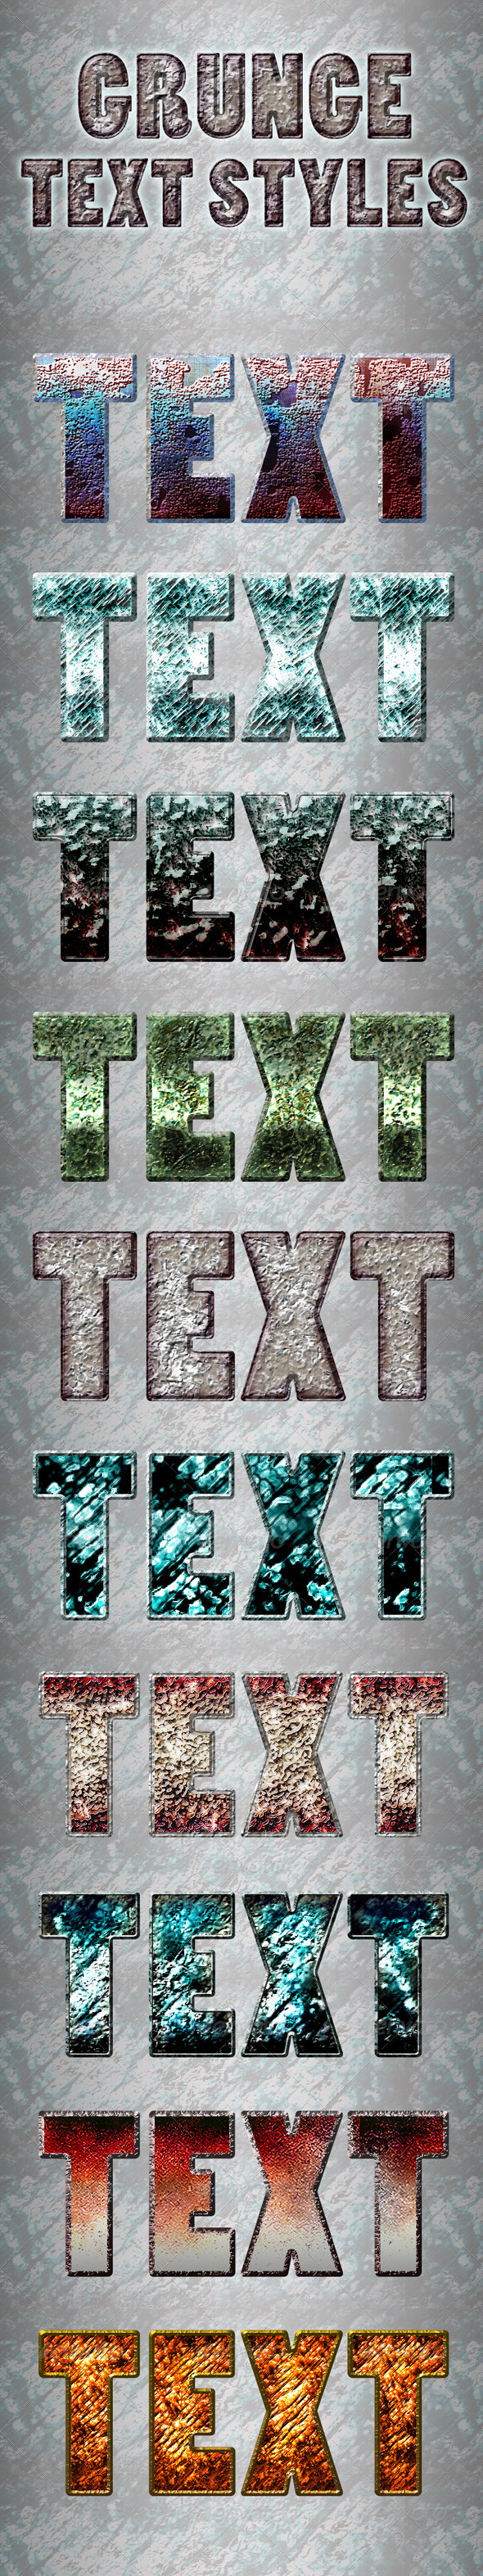 GraphicRiver Grunge Text Styles 3579492